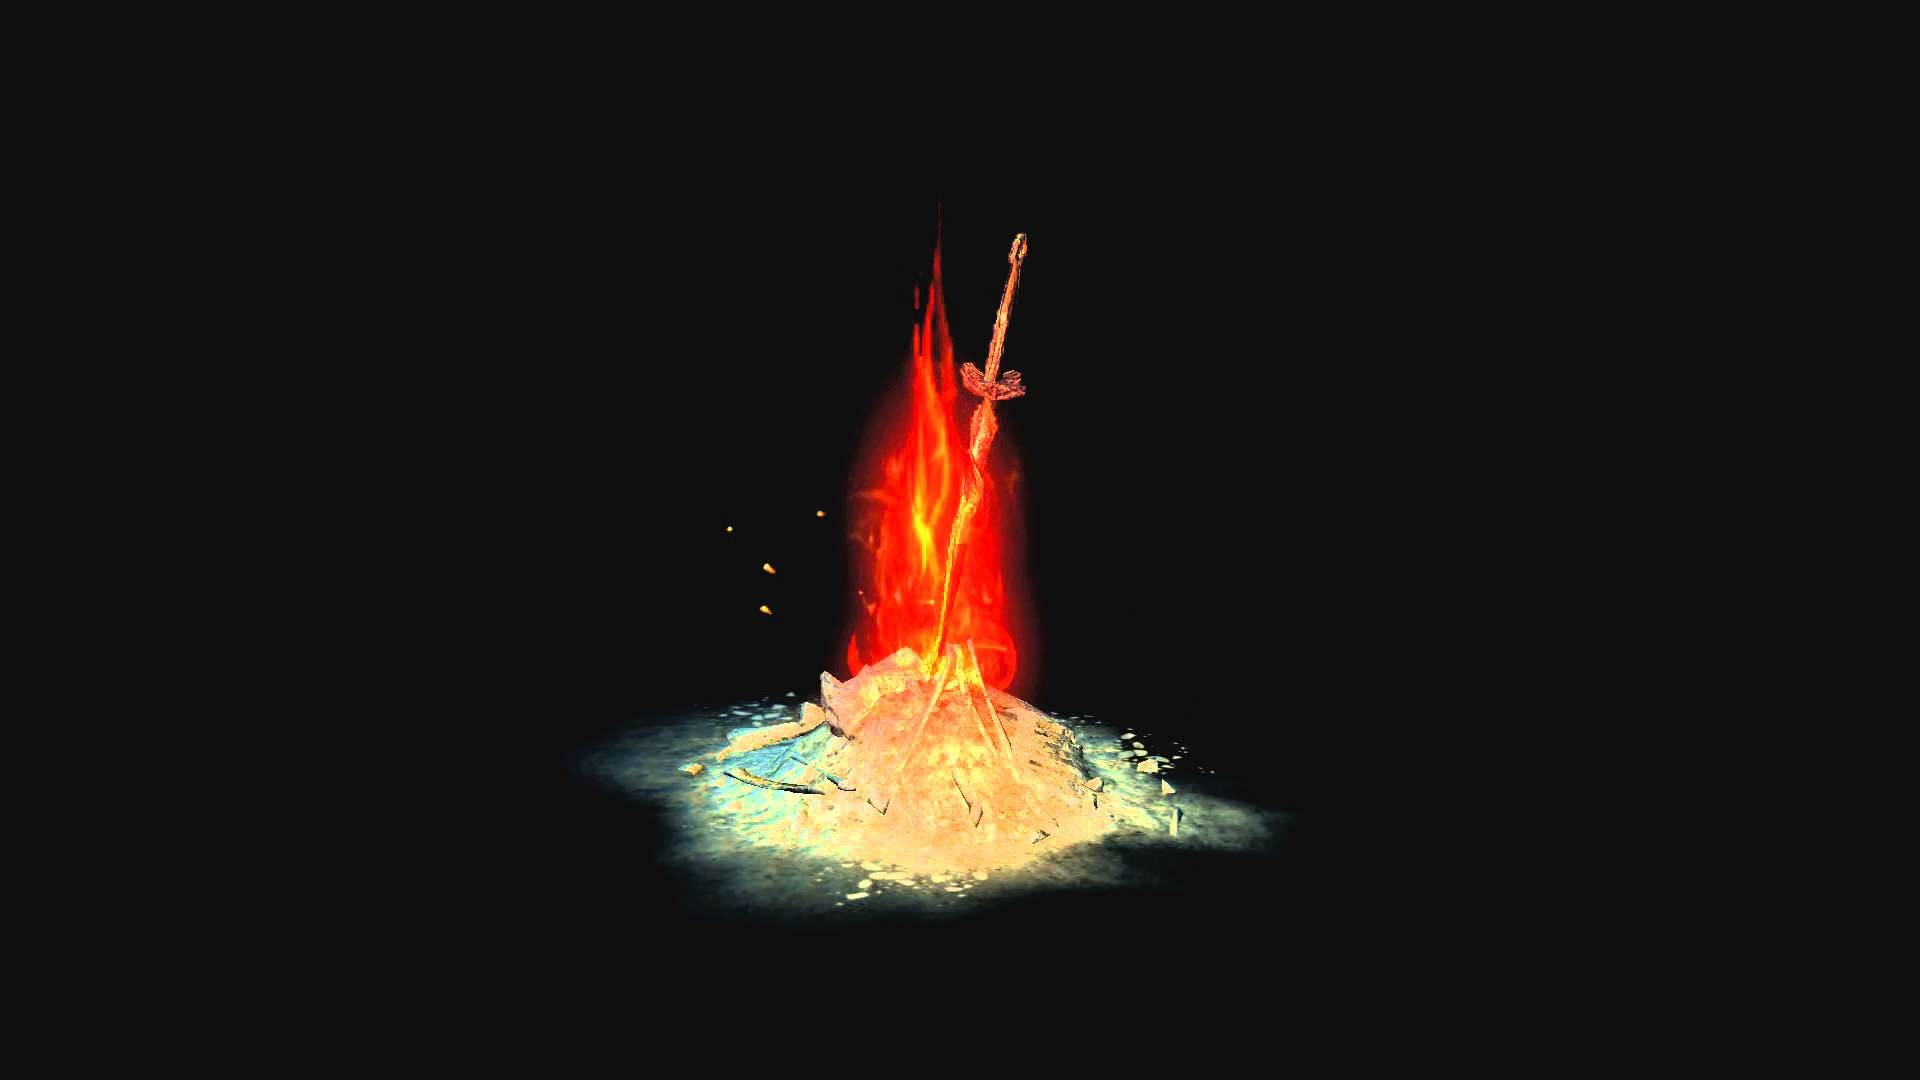 HD Dreamscene Bonfire Loop (1 Kindling)